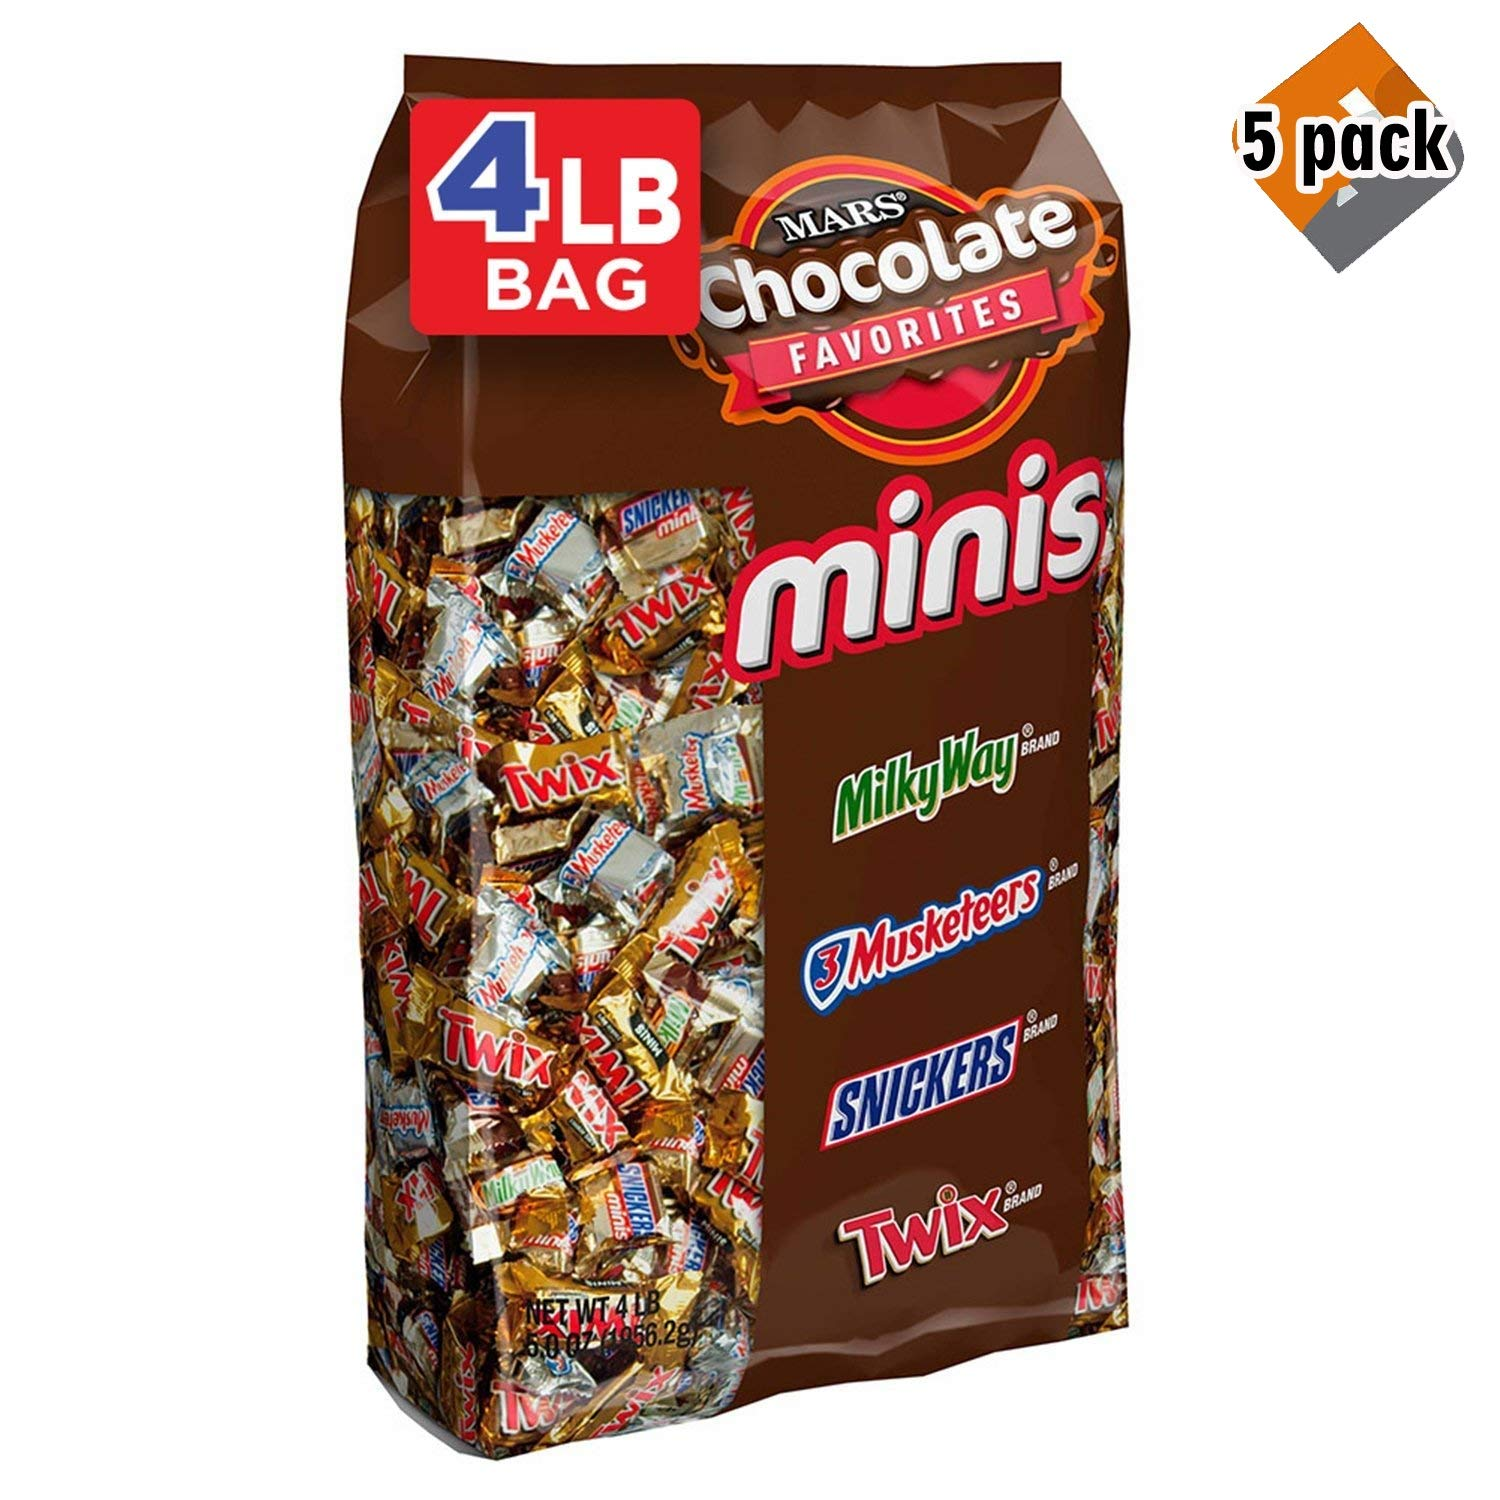 SNICKERS, TWIX, 3 MUSKETEERS & MILKY WAY Minis Size Easter Candy Variety Mix, 240 Pieces, 5 Pack